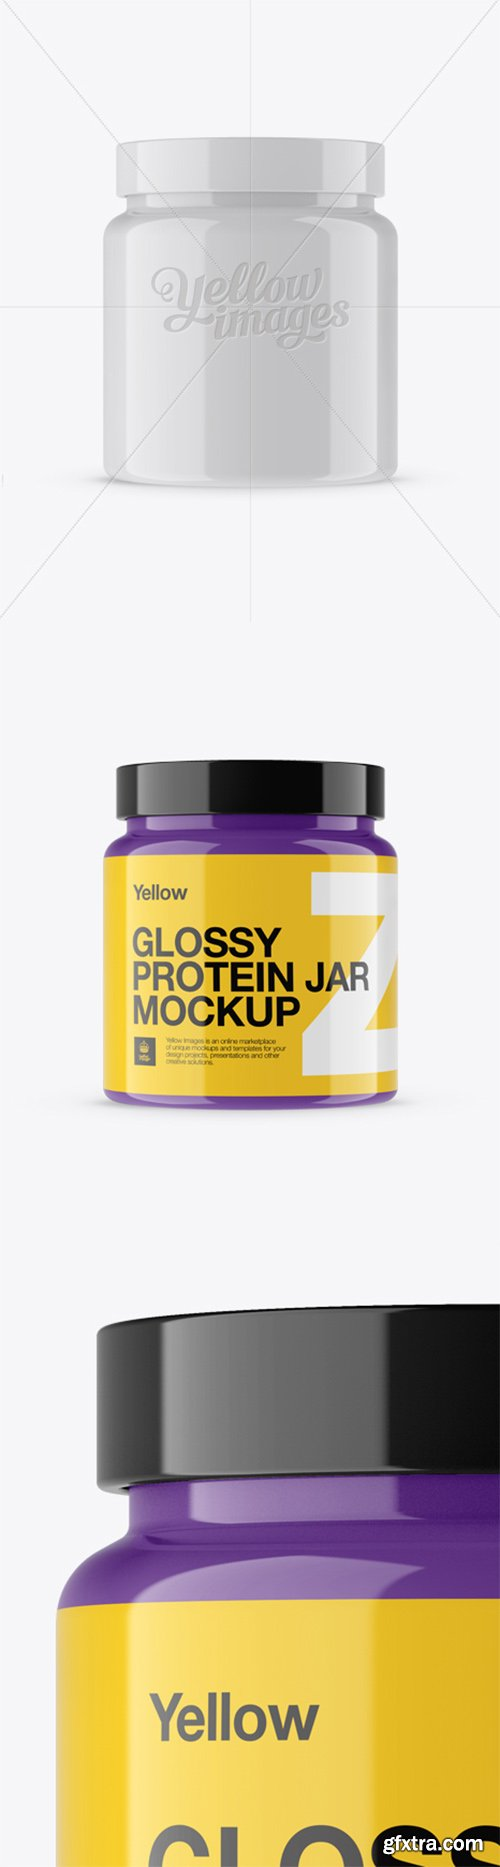 Glossy Protein Jar Mockup - Front View 13770